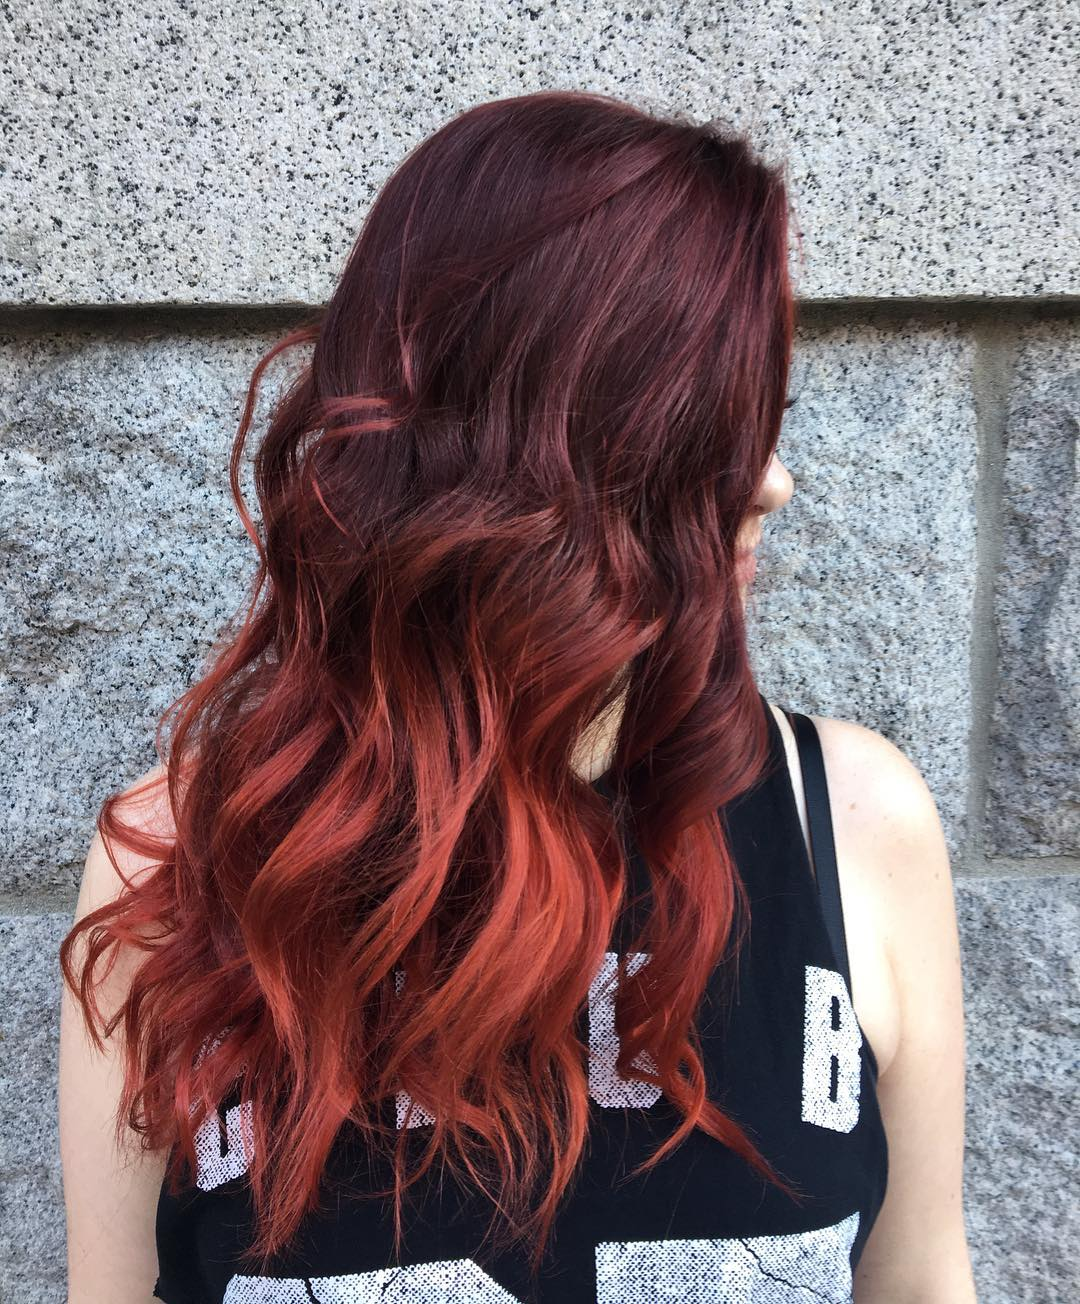 red ombre hair color 36 new stunning ideas. Black Bedroom Furniture Sets. Home Design Ideas